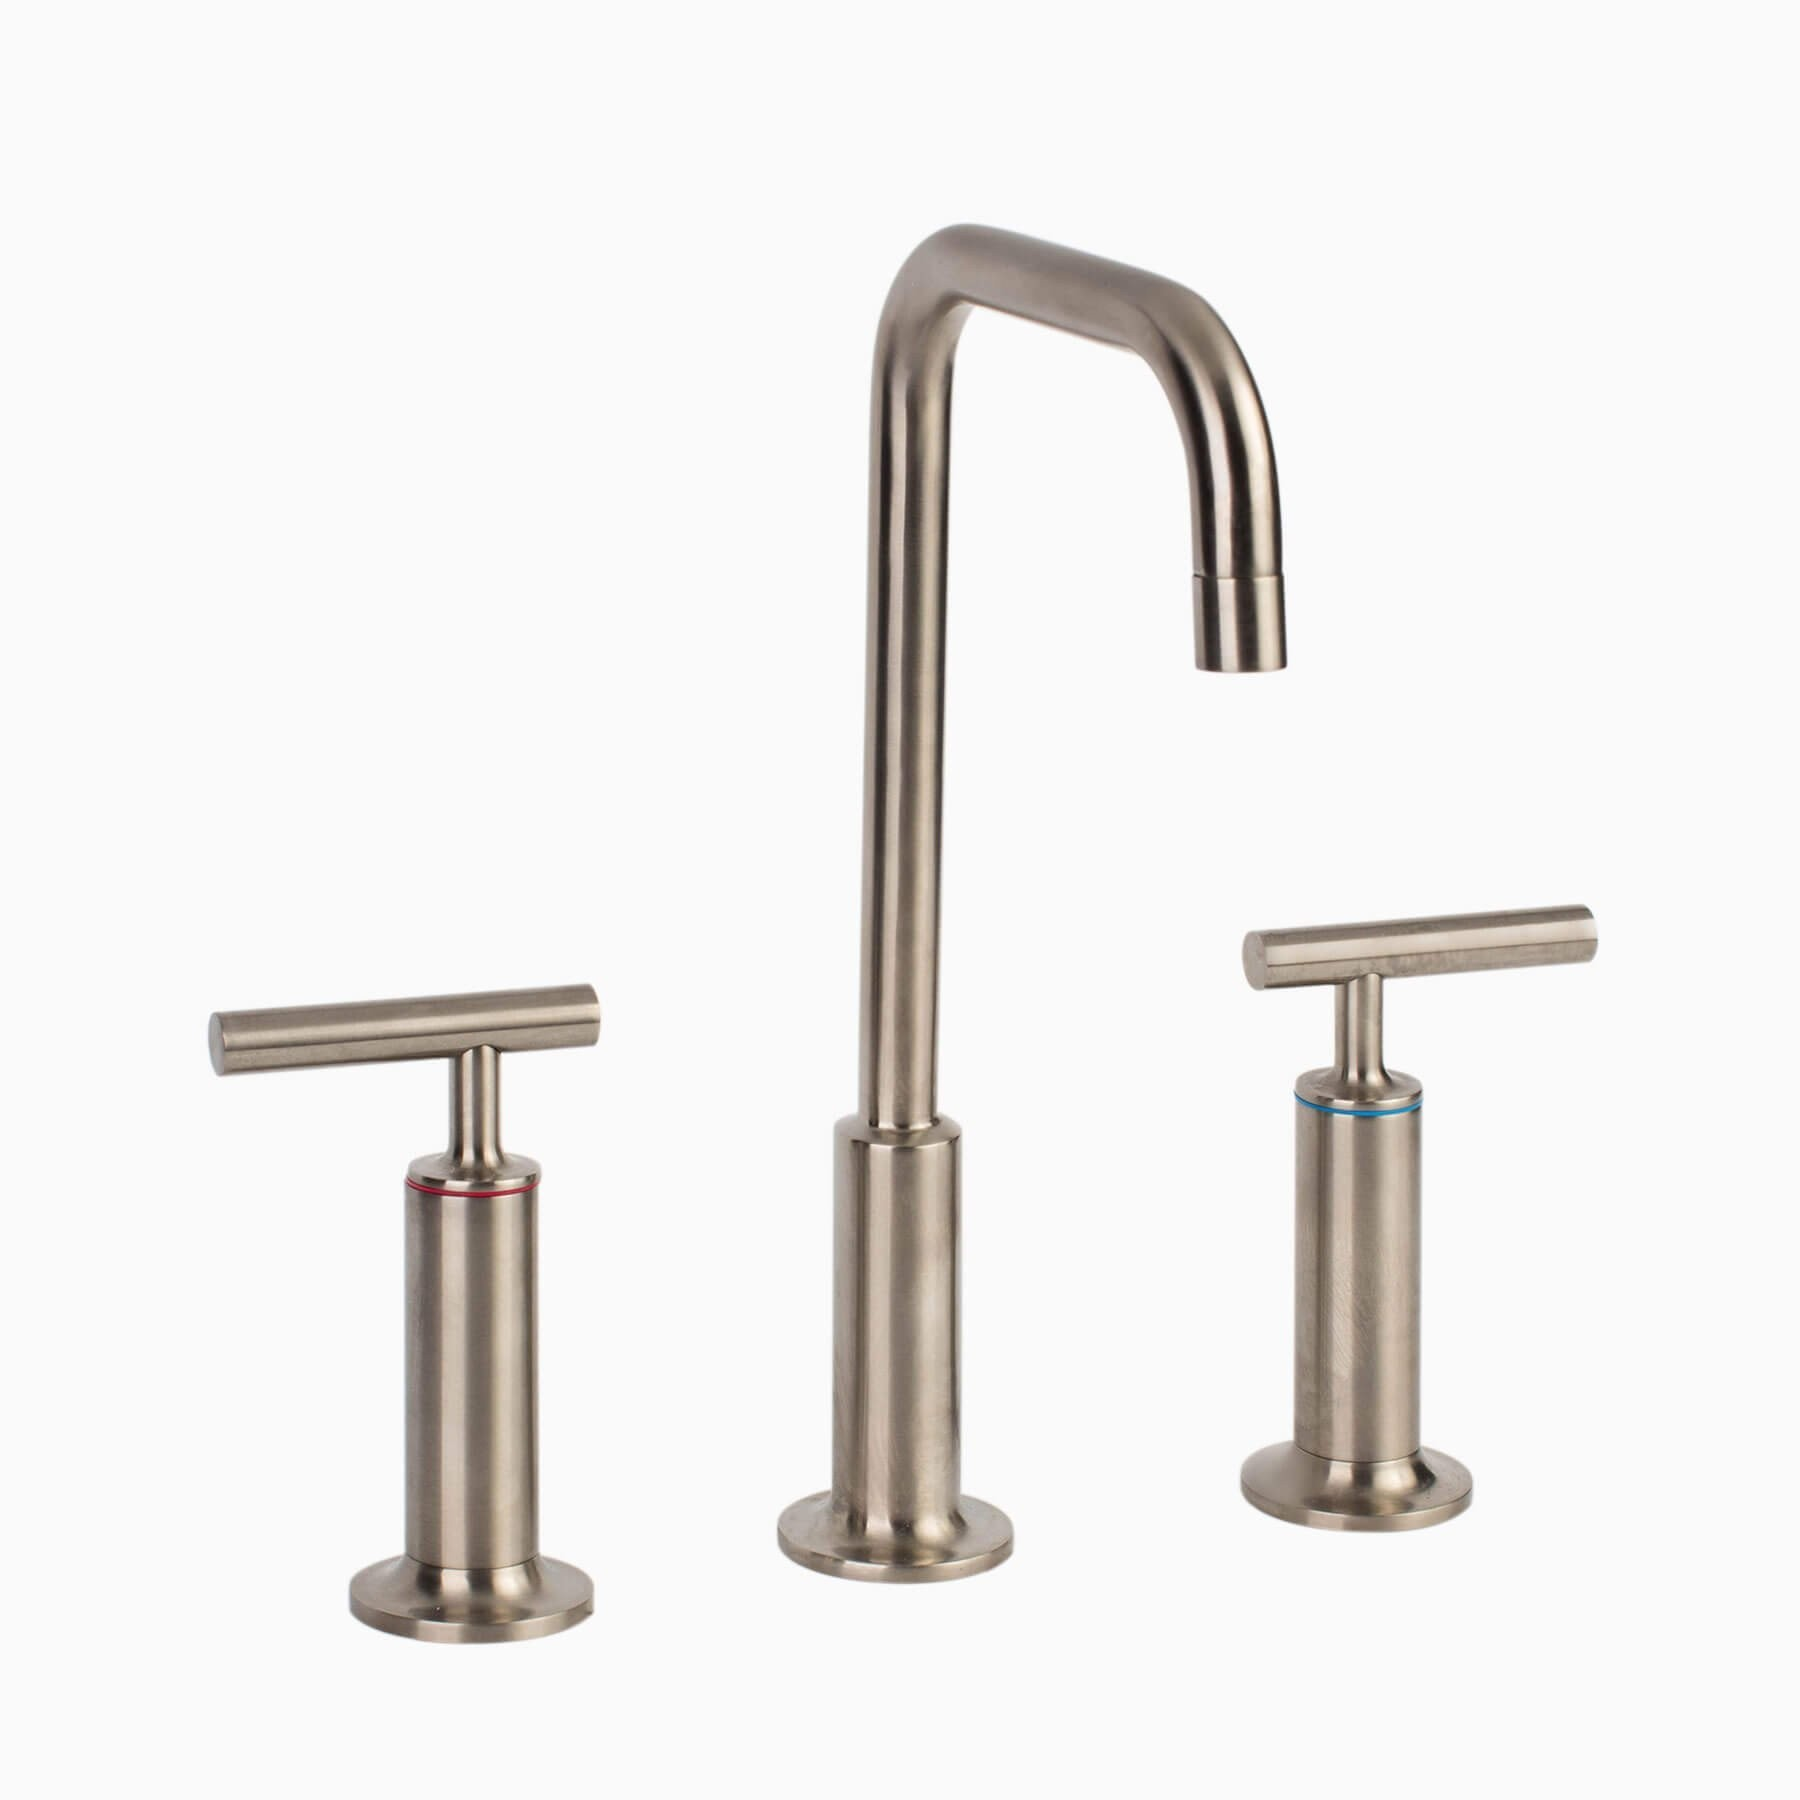 Awesome 3 Piece Bathroom Sink Faucet Ideas Best Inspiration Home Design